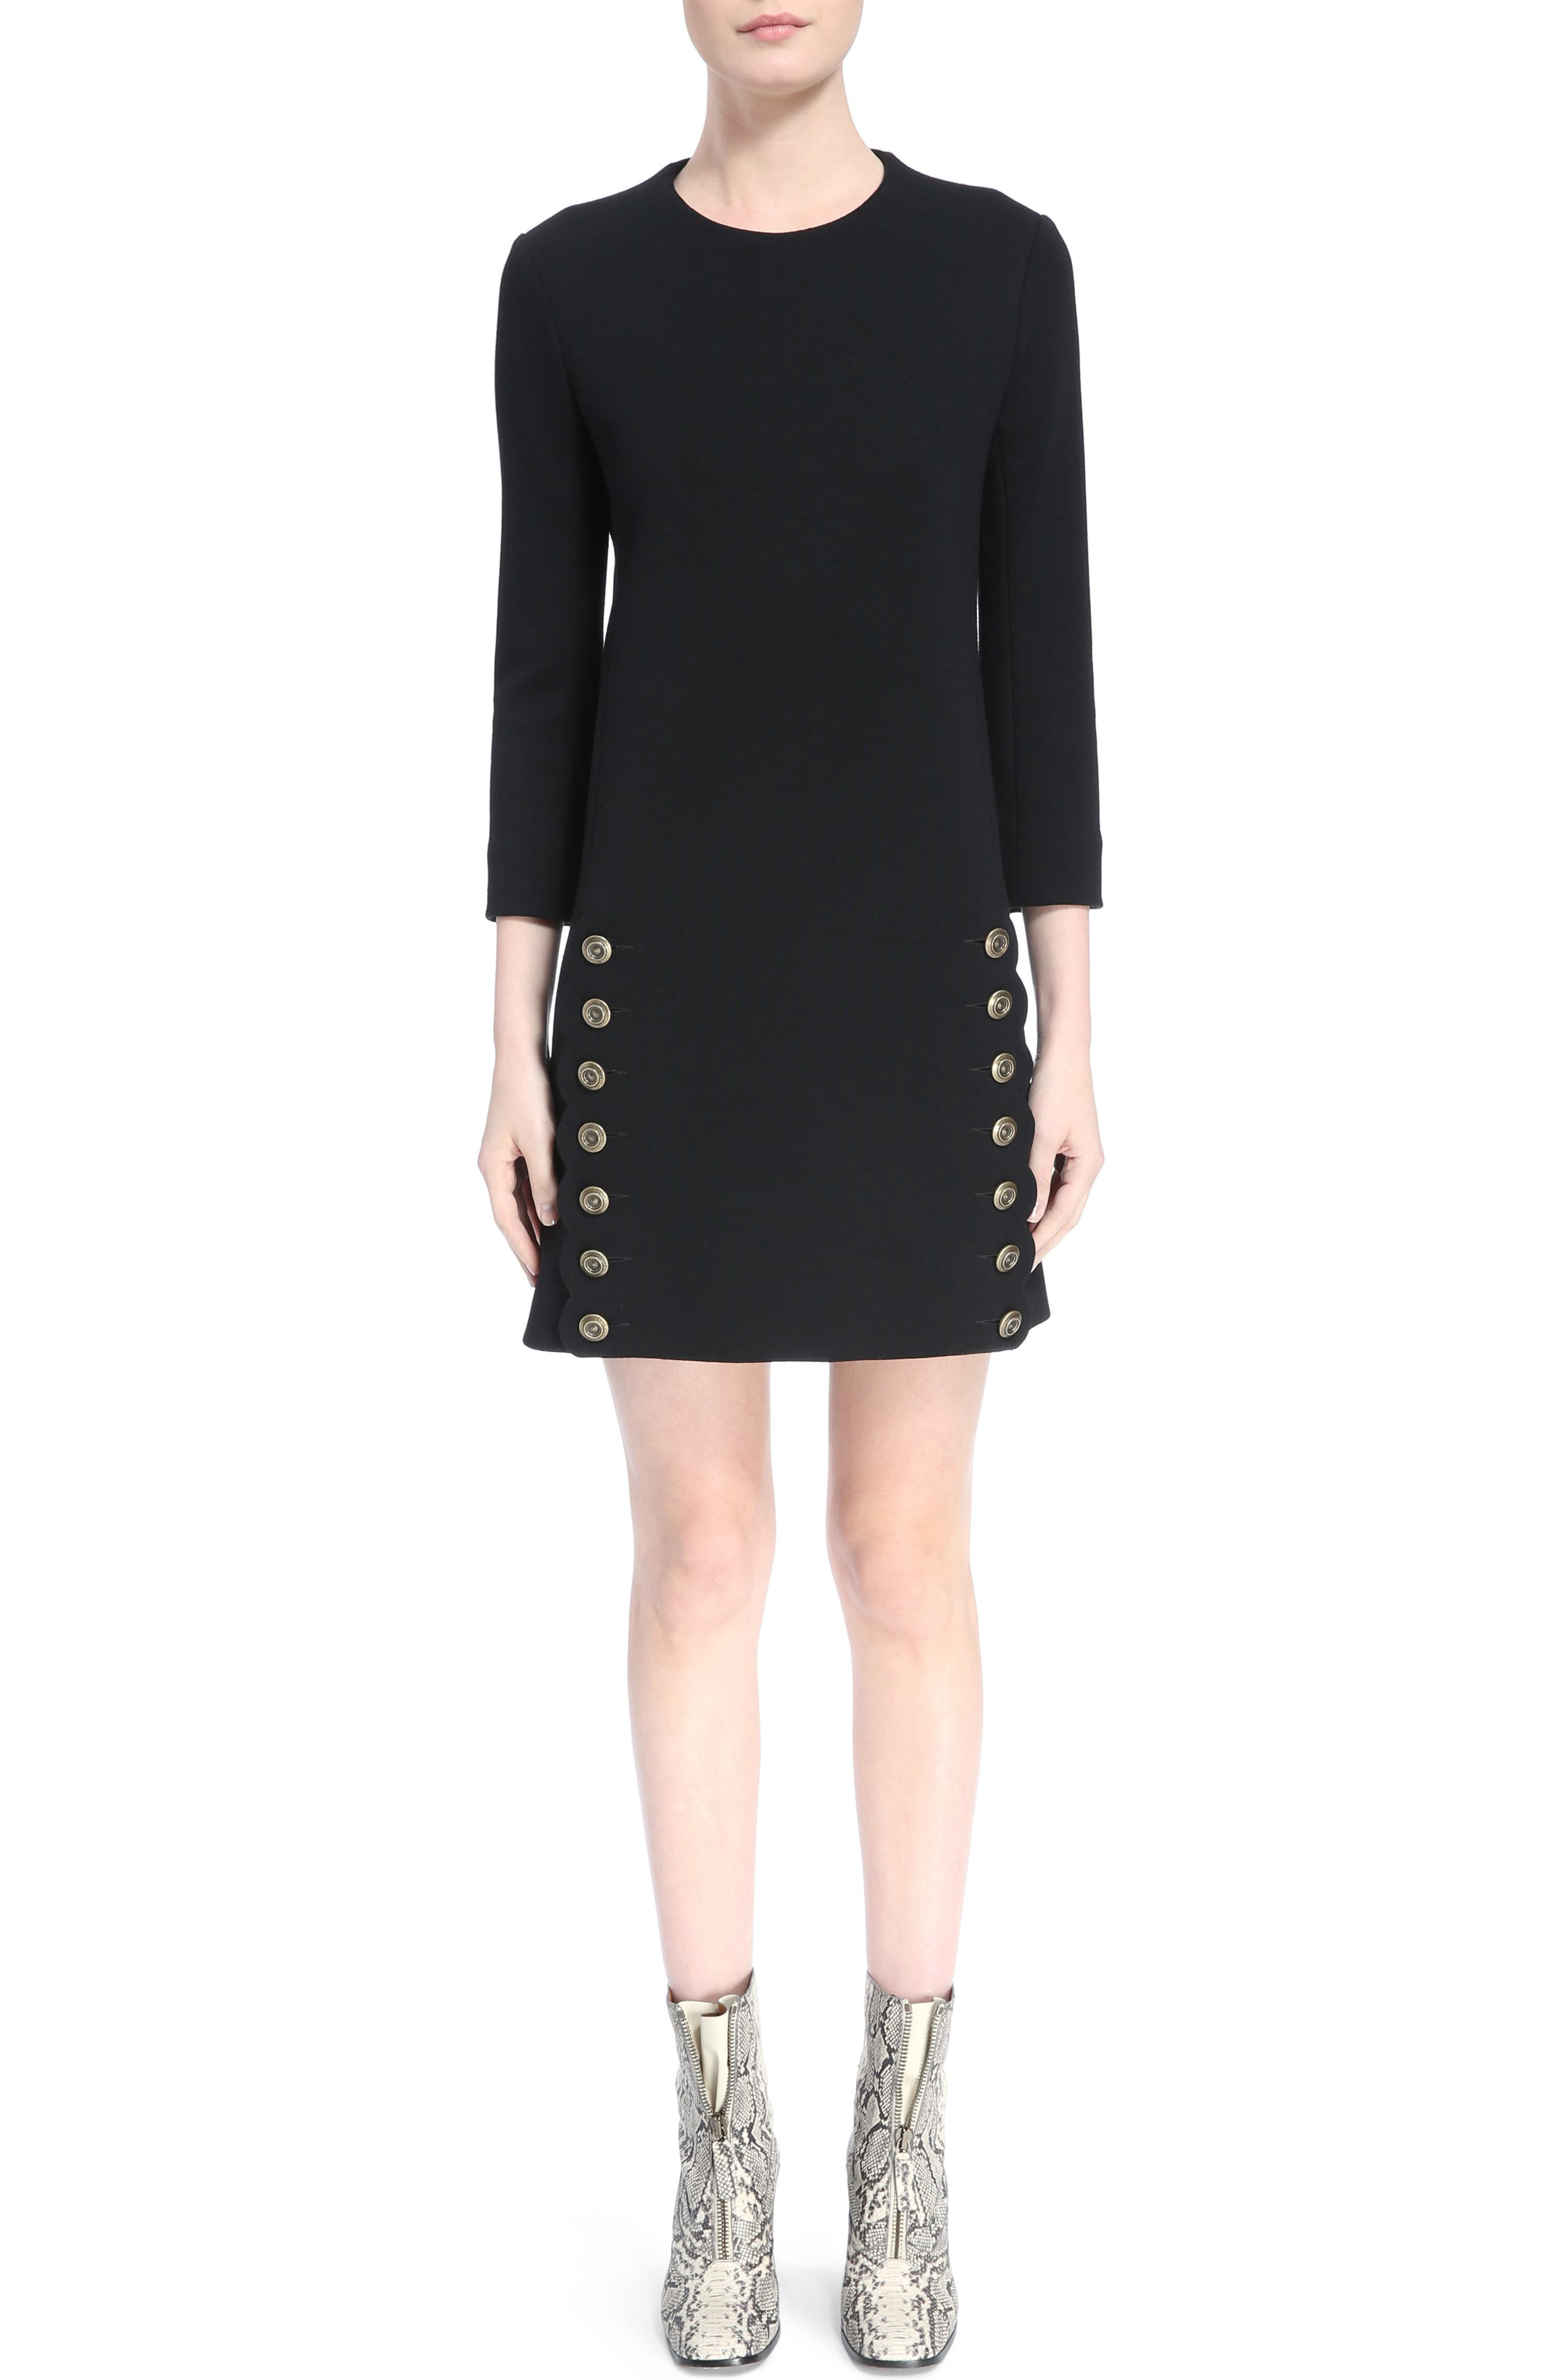 Alternate Image 1 Selected - Chloé Button Trim Wool Knit Dress